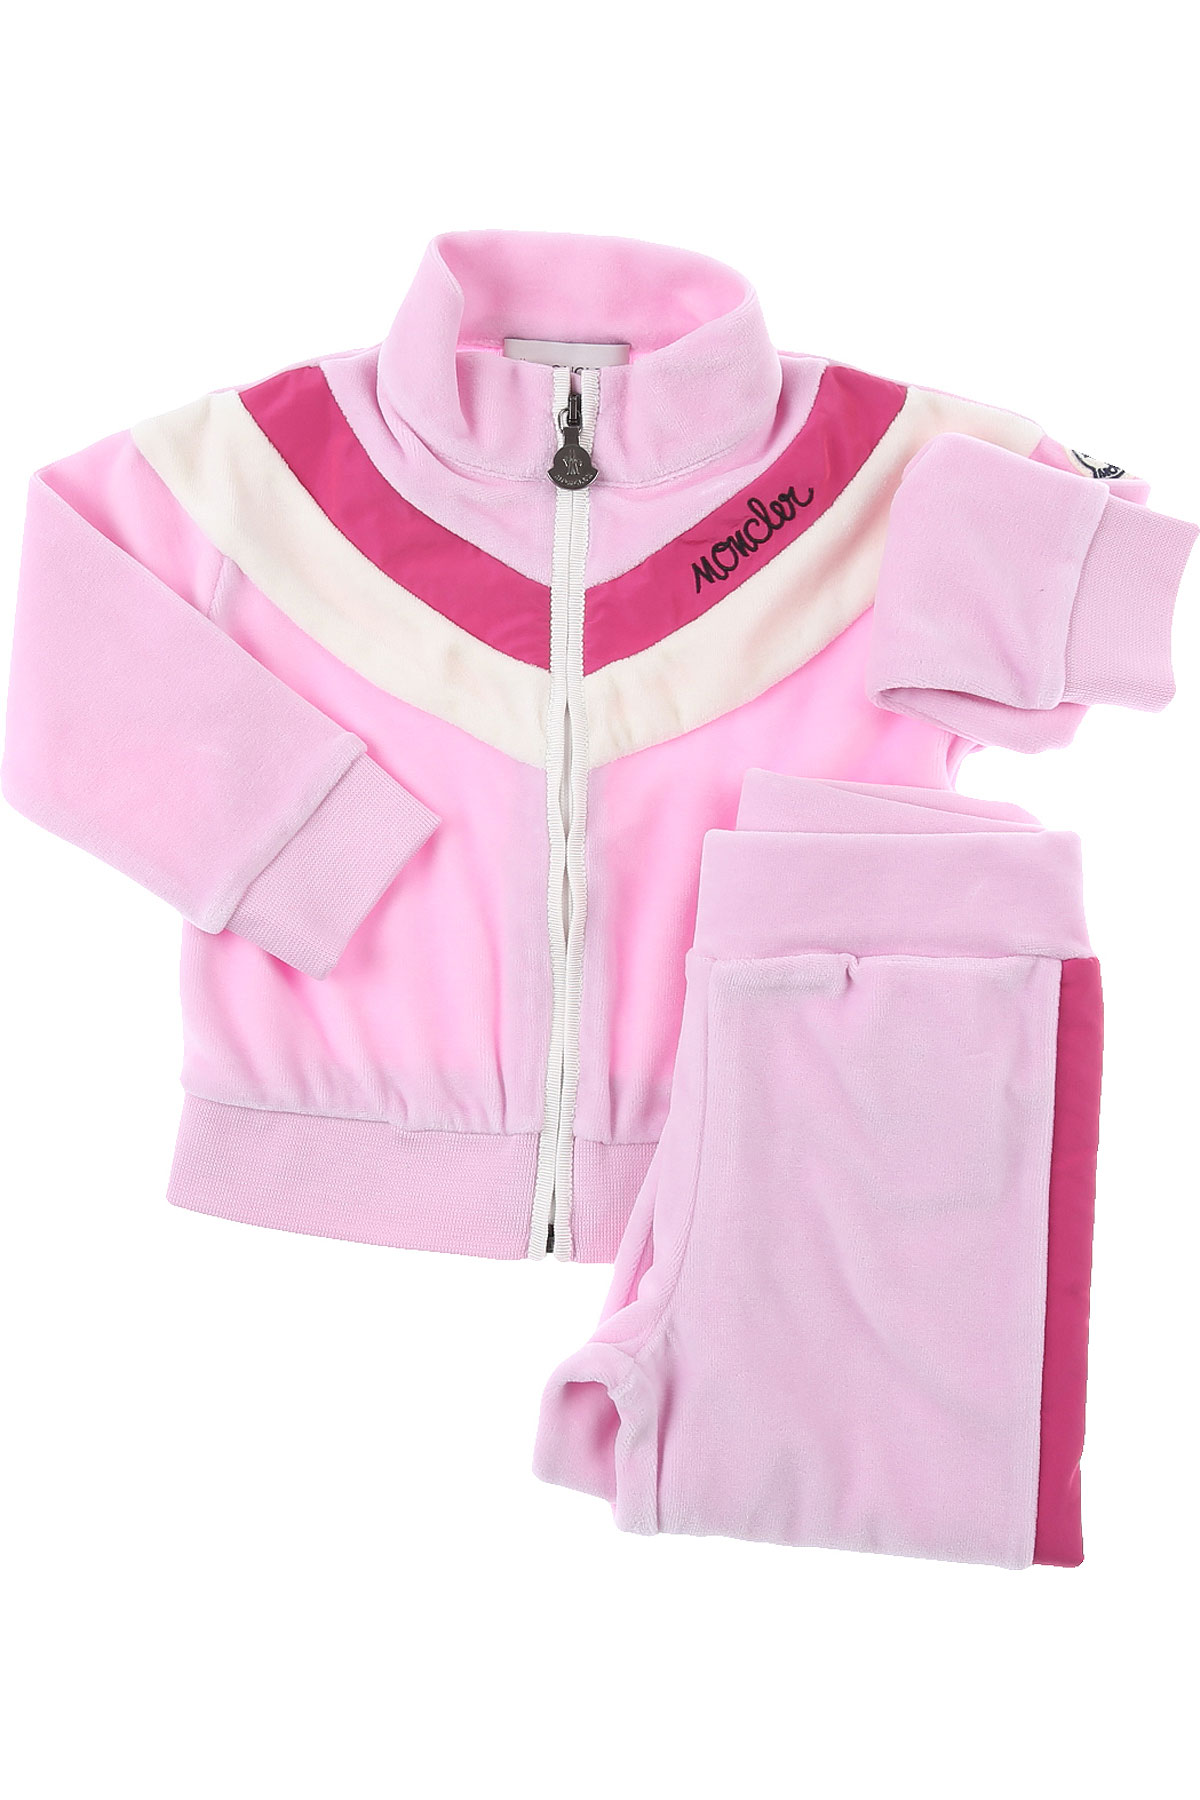 Moncler Baby Sets for Girls On Sale, Pink, Cotton, 2019, 18M 24M 2Y 3Y